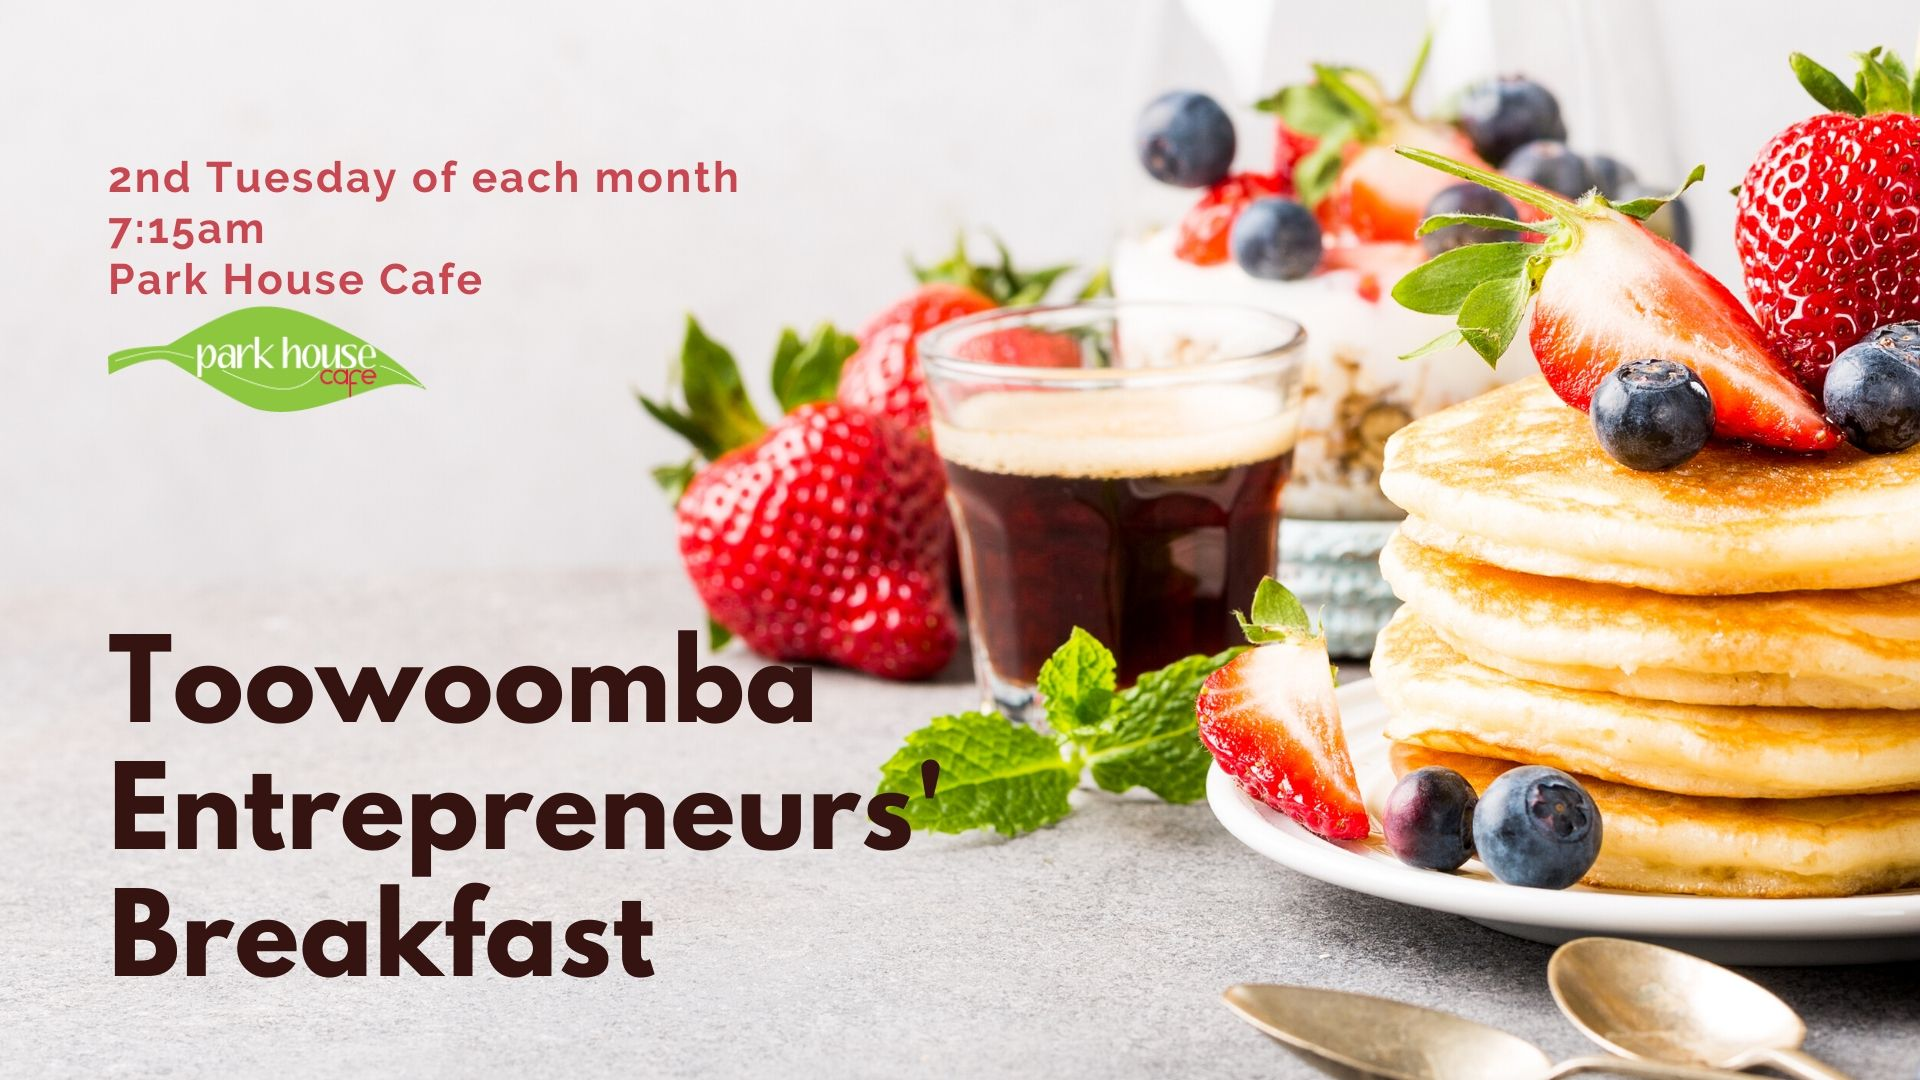 Toowoomba Entrepreneurs Breakfast - 2nd Tuesday of each Month at the Park House Cafe, sponsored by Canvas Coworking